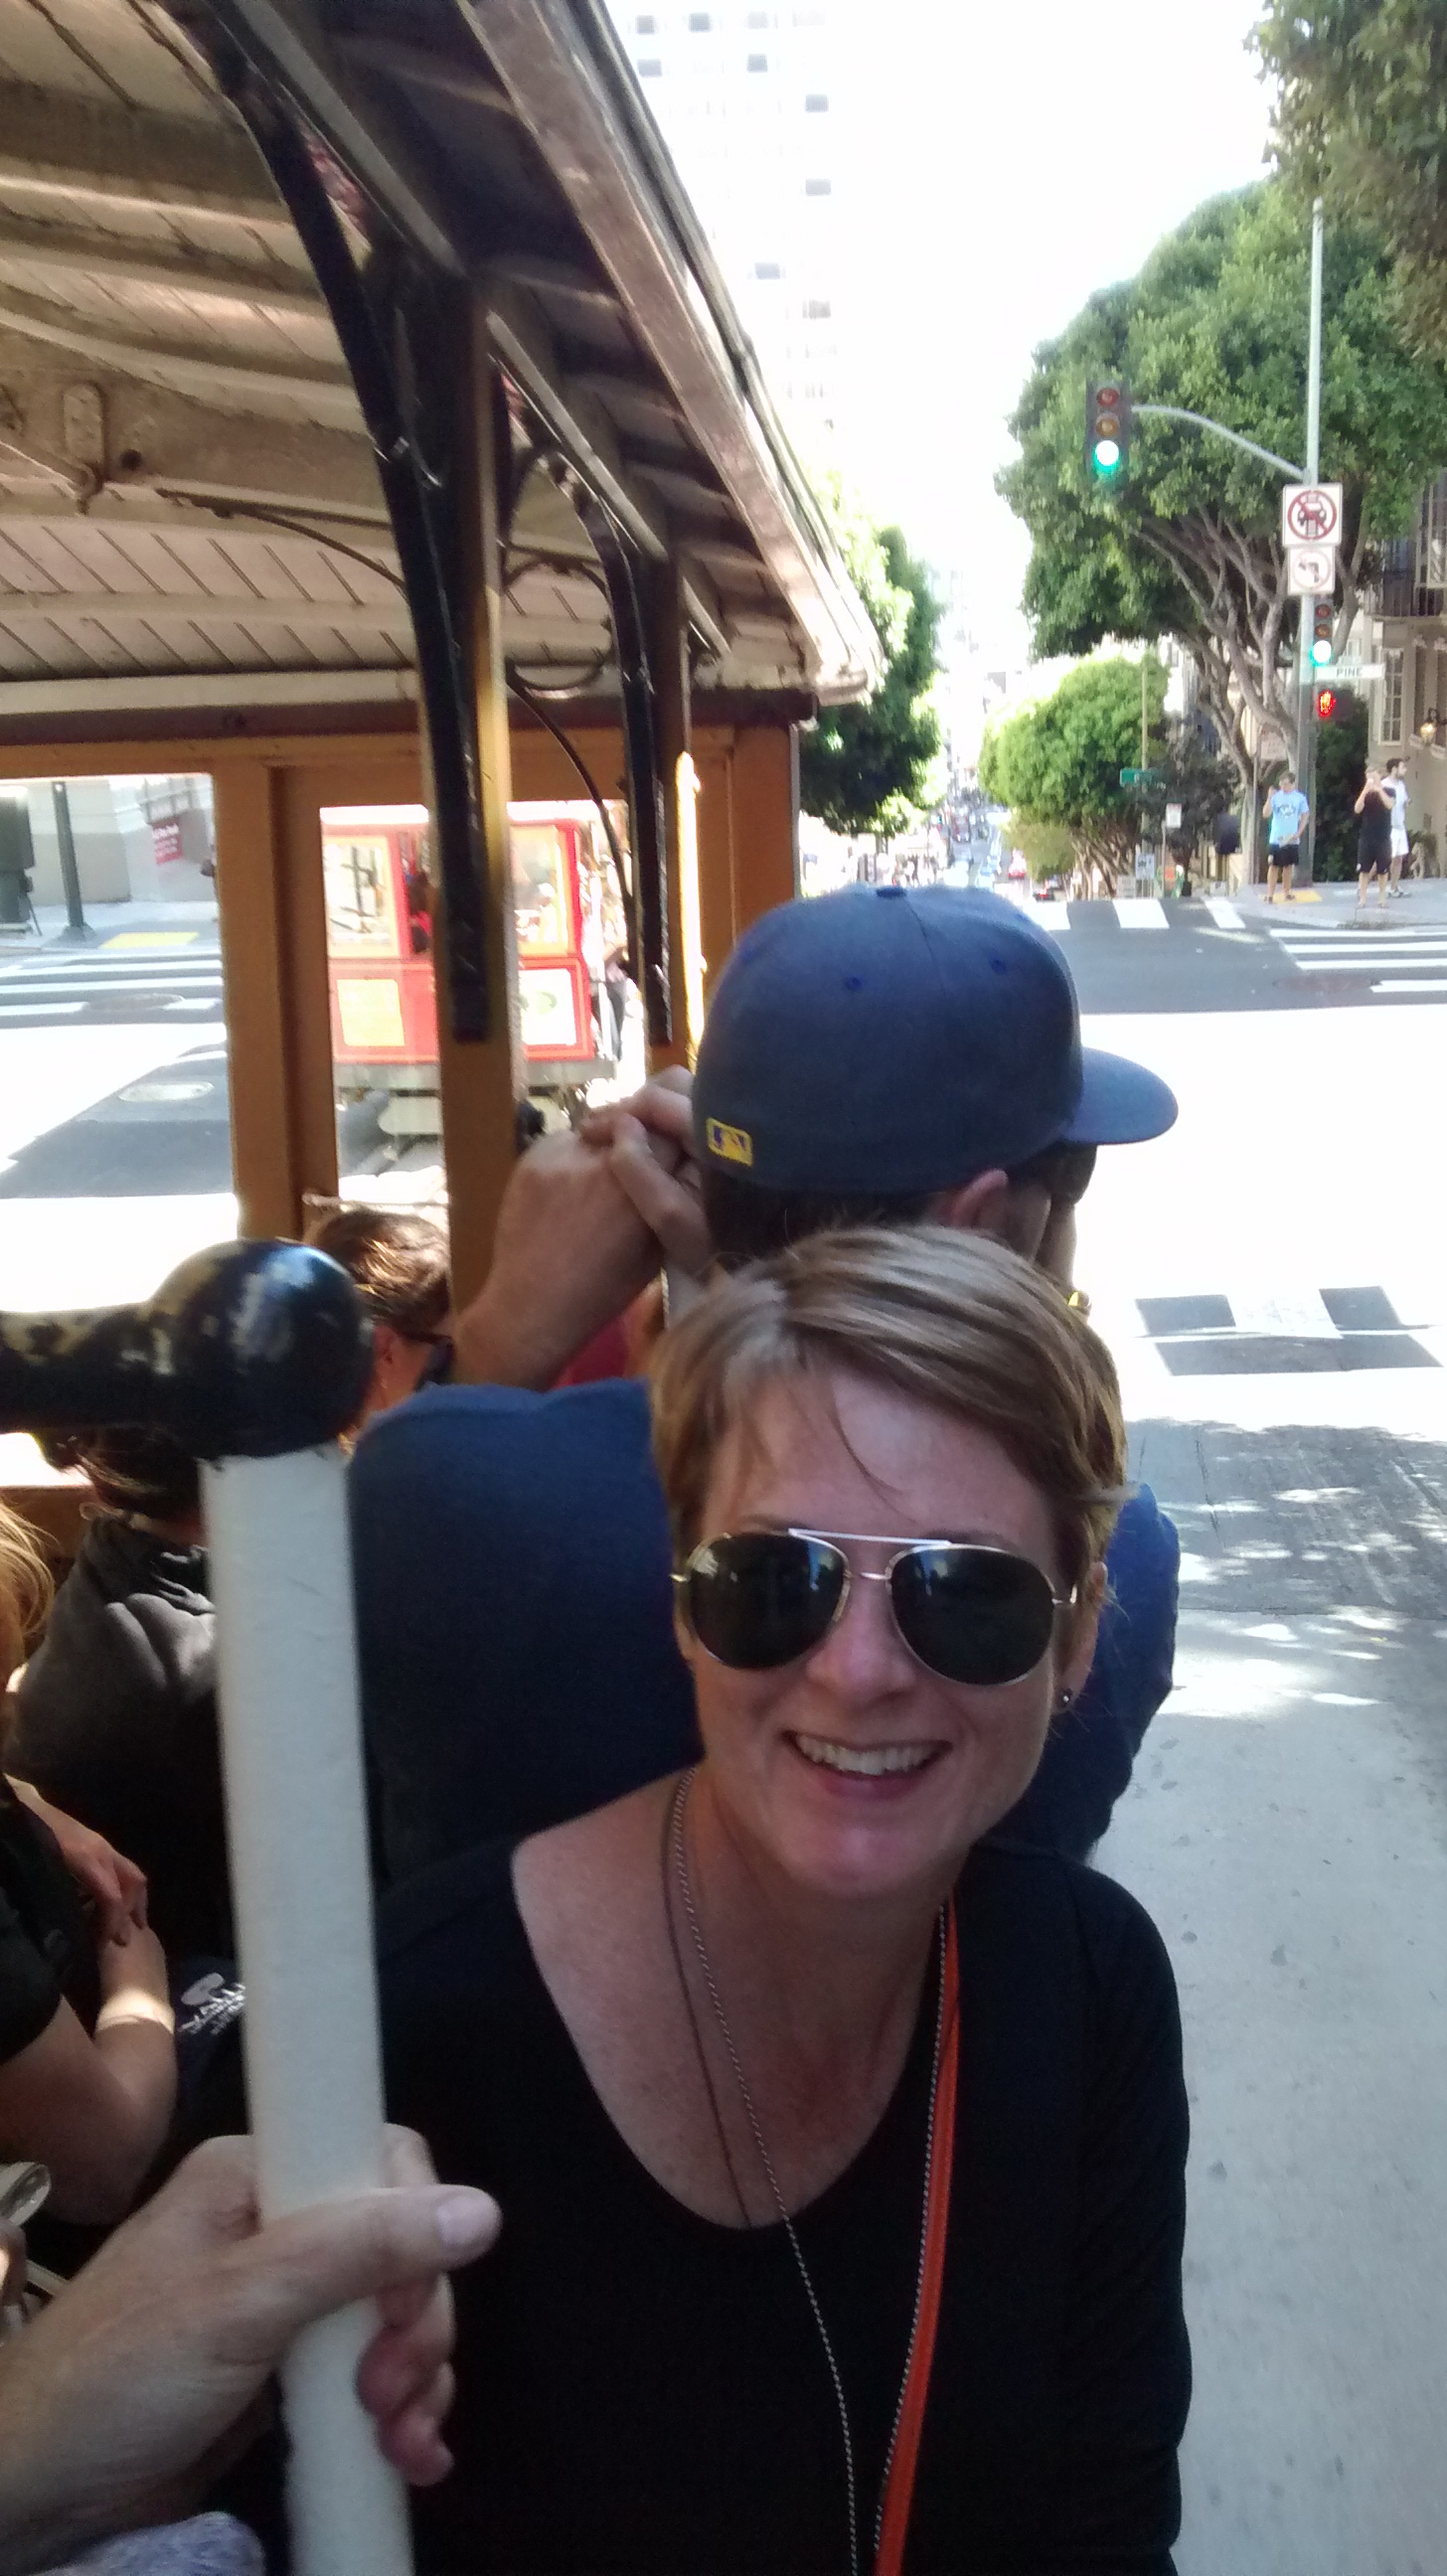 I got to ride on the outside, standing up! I felt so cool-touristy! People waved at me!